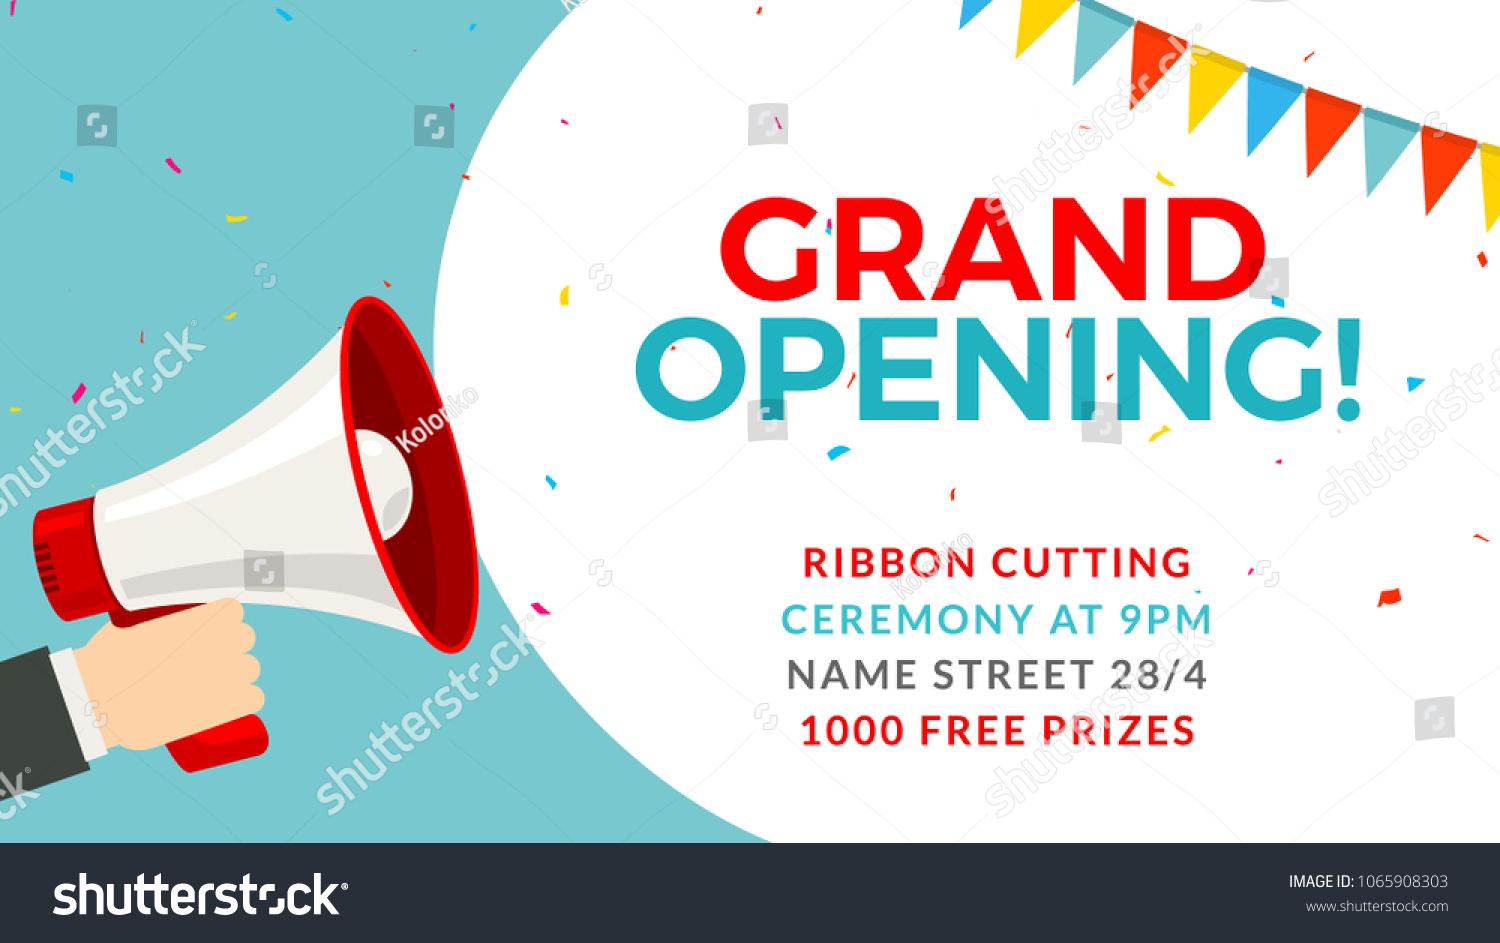 Grand Opening Flyer Banner Template Marketing Stock Vector Royalty